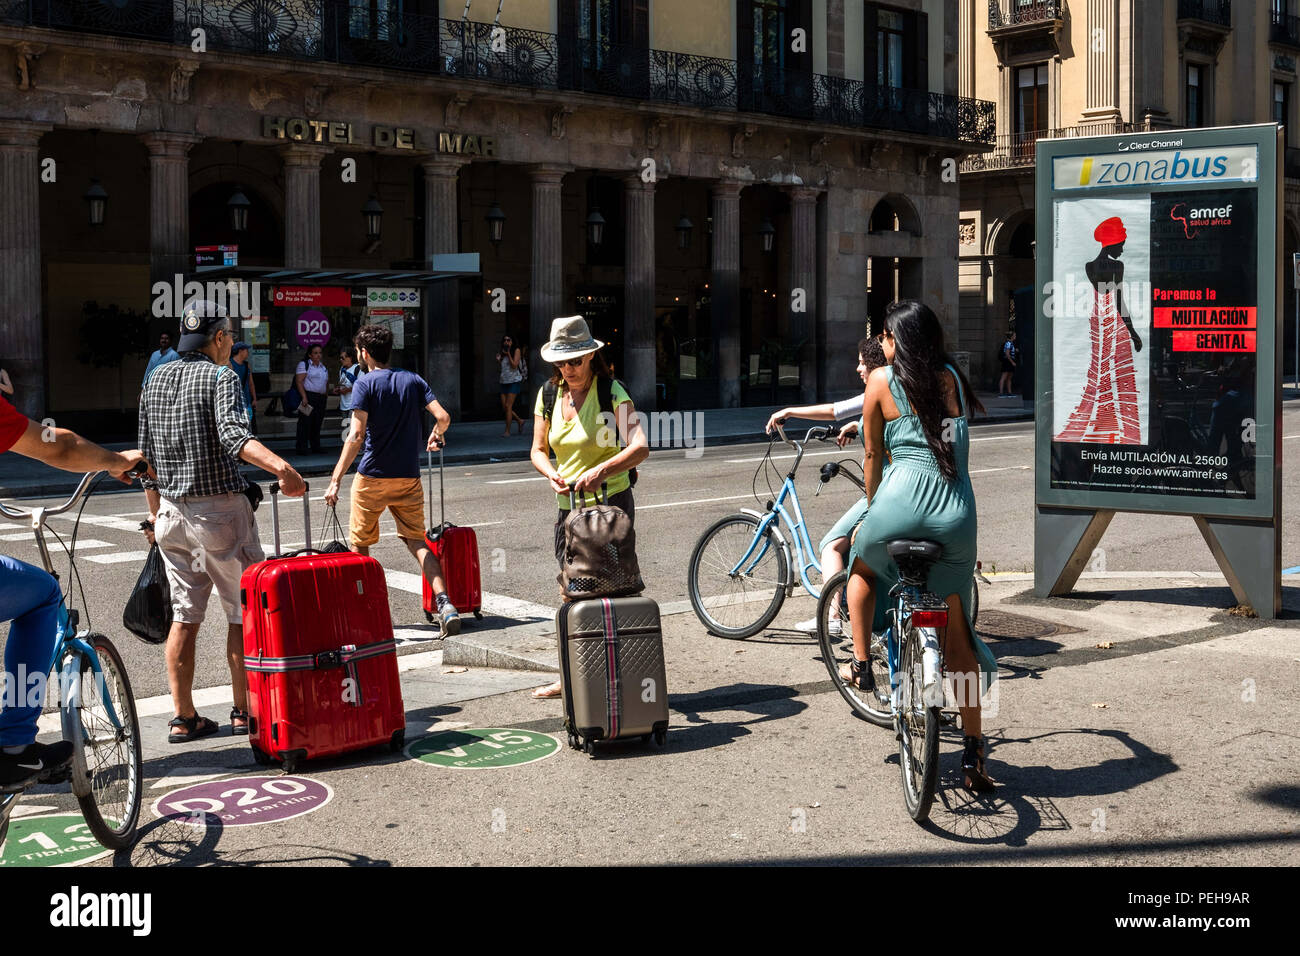 Barcelona, Catalonia, Spain. 15th Aug, 2018. A poster of the campaign against female genital mutilation is seen in Barcelona.Amref Health Africa, the largest international health organization of African origin and management, is launching a social awareness campaign against female genital mutilation in the streets of Barcelona. According to Unicef there are more than 200 million girls and women in 30 countries that have suffered partial or total removal of external genitalia. In Spain, it is estimated that more than 18,000 girls are at risk of suffering female genital mutilation (Credit I - Stock Image